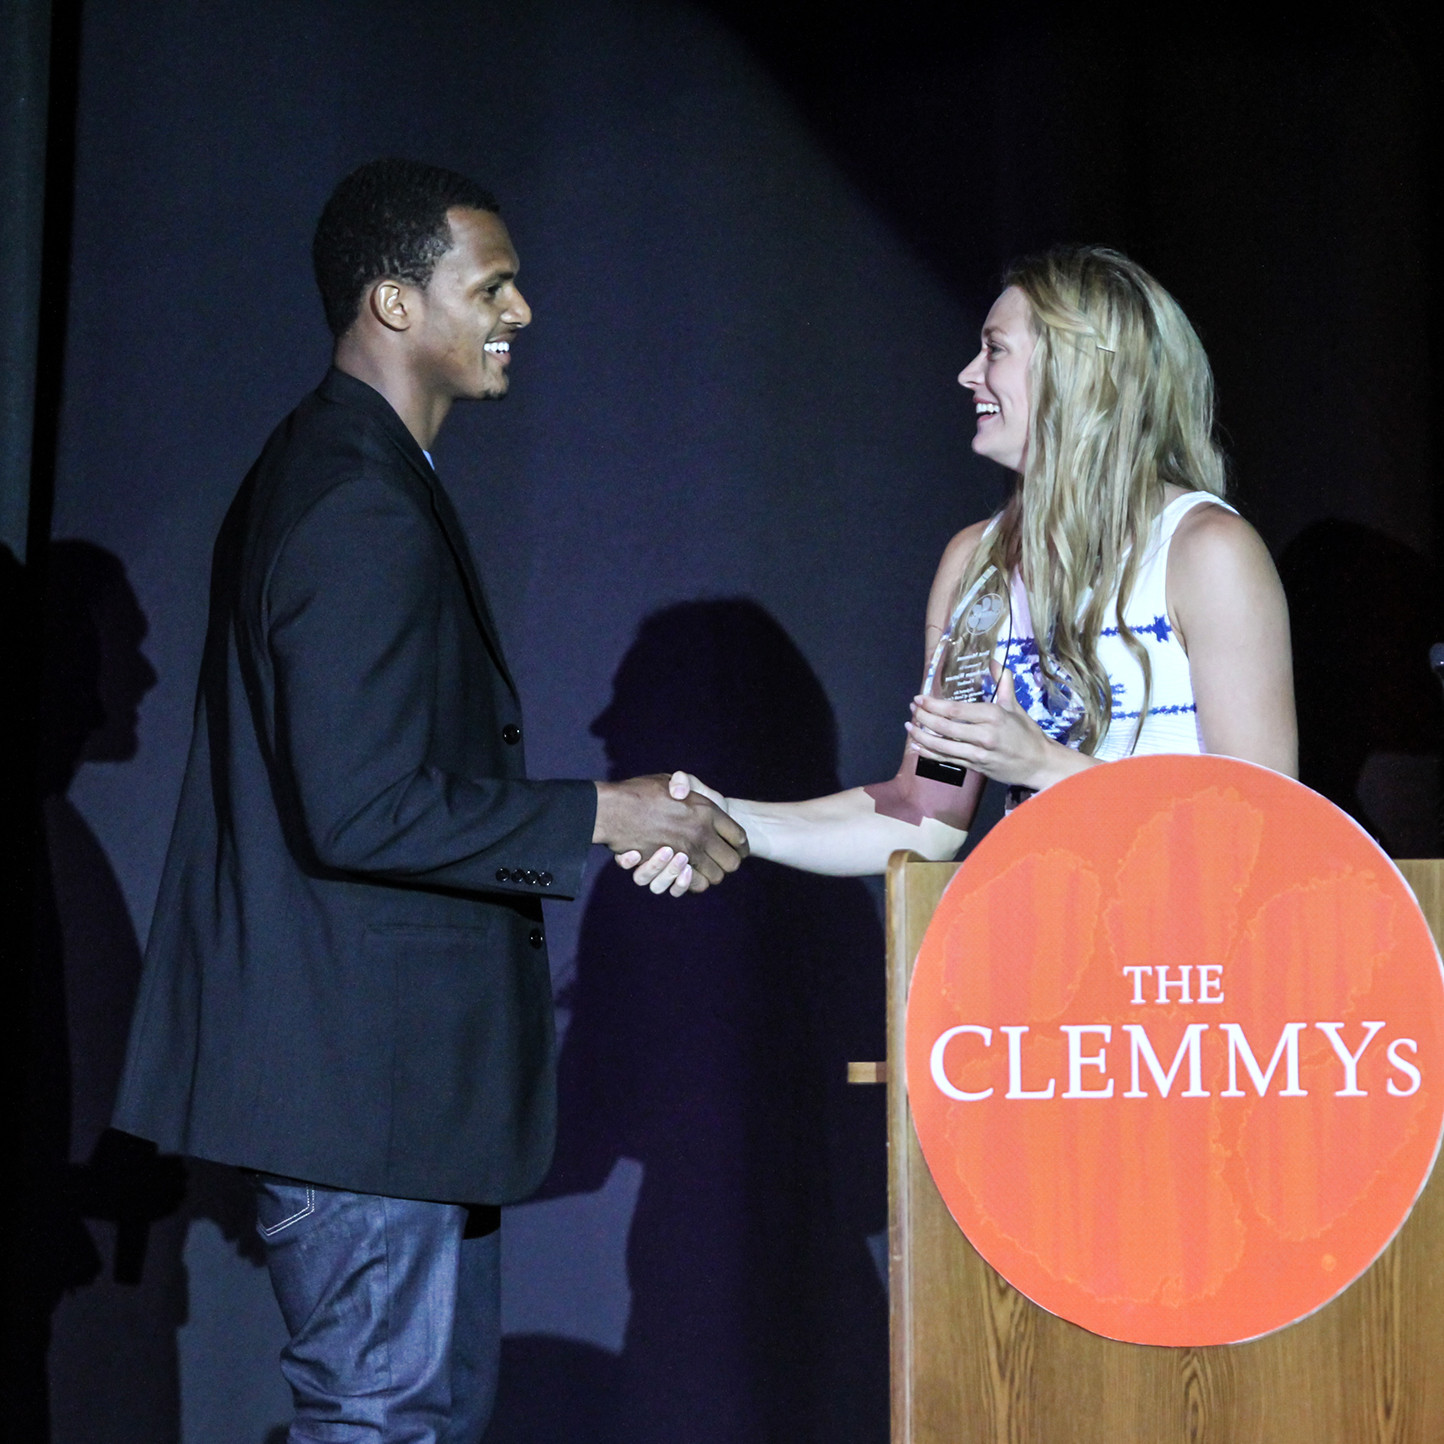 Student-Athletes Shine at Third Annual #CLEMMYs